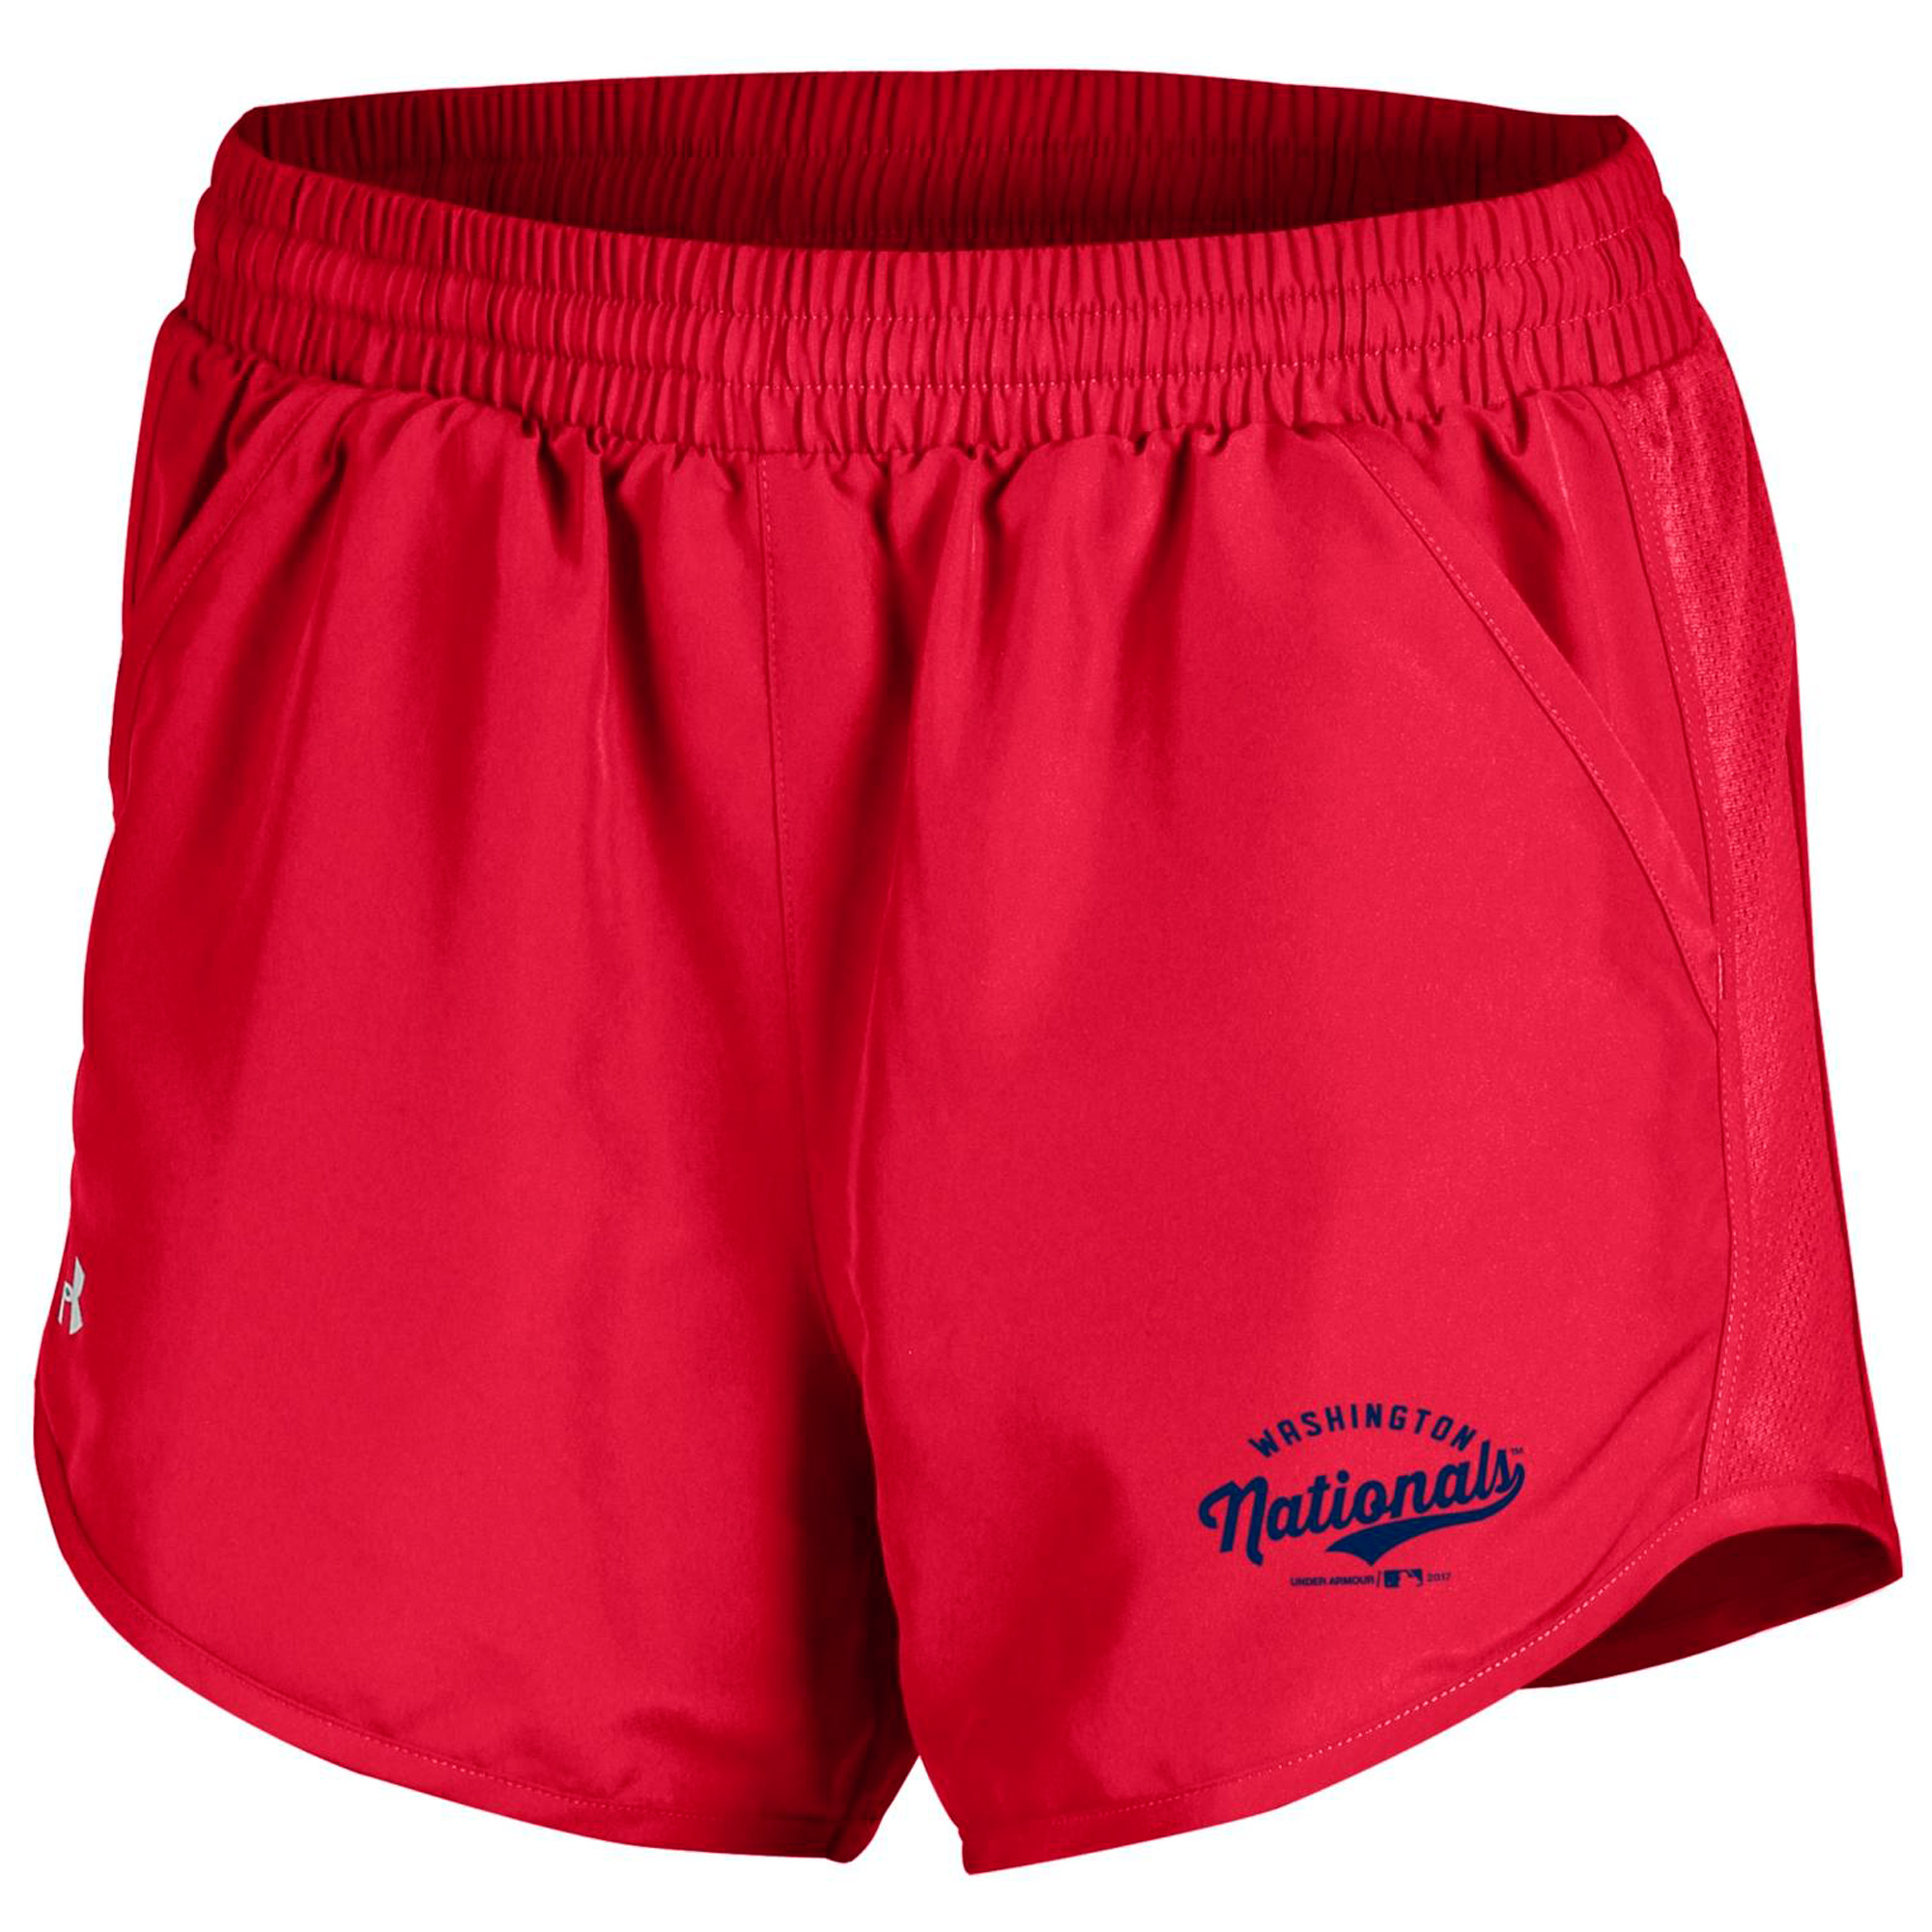 Washington Nationals Under Armour Women's Fly By Performance Running Shorts - Red